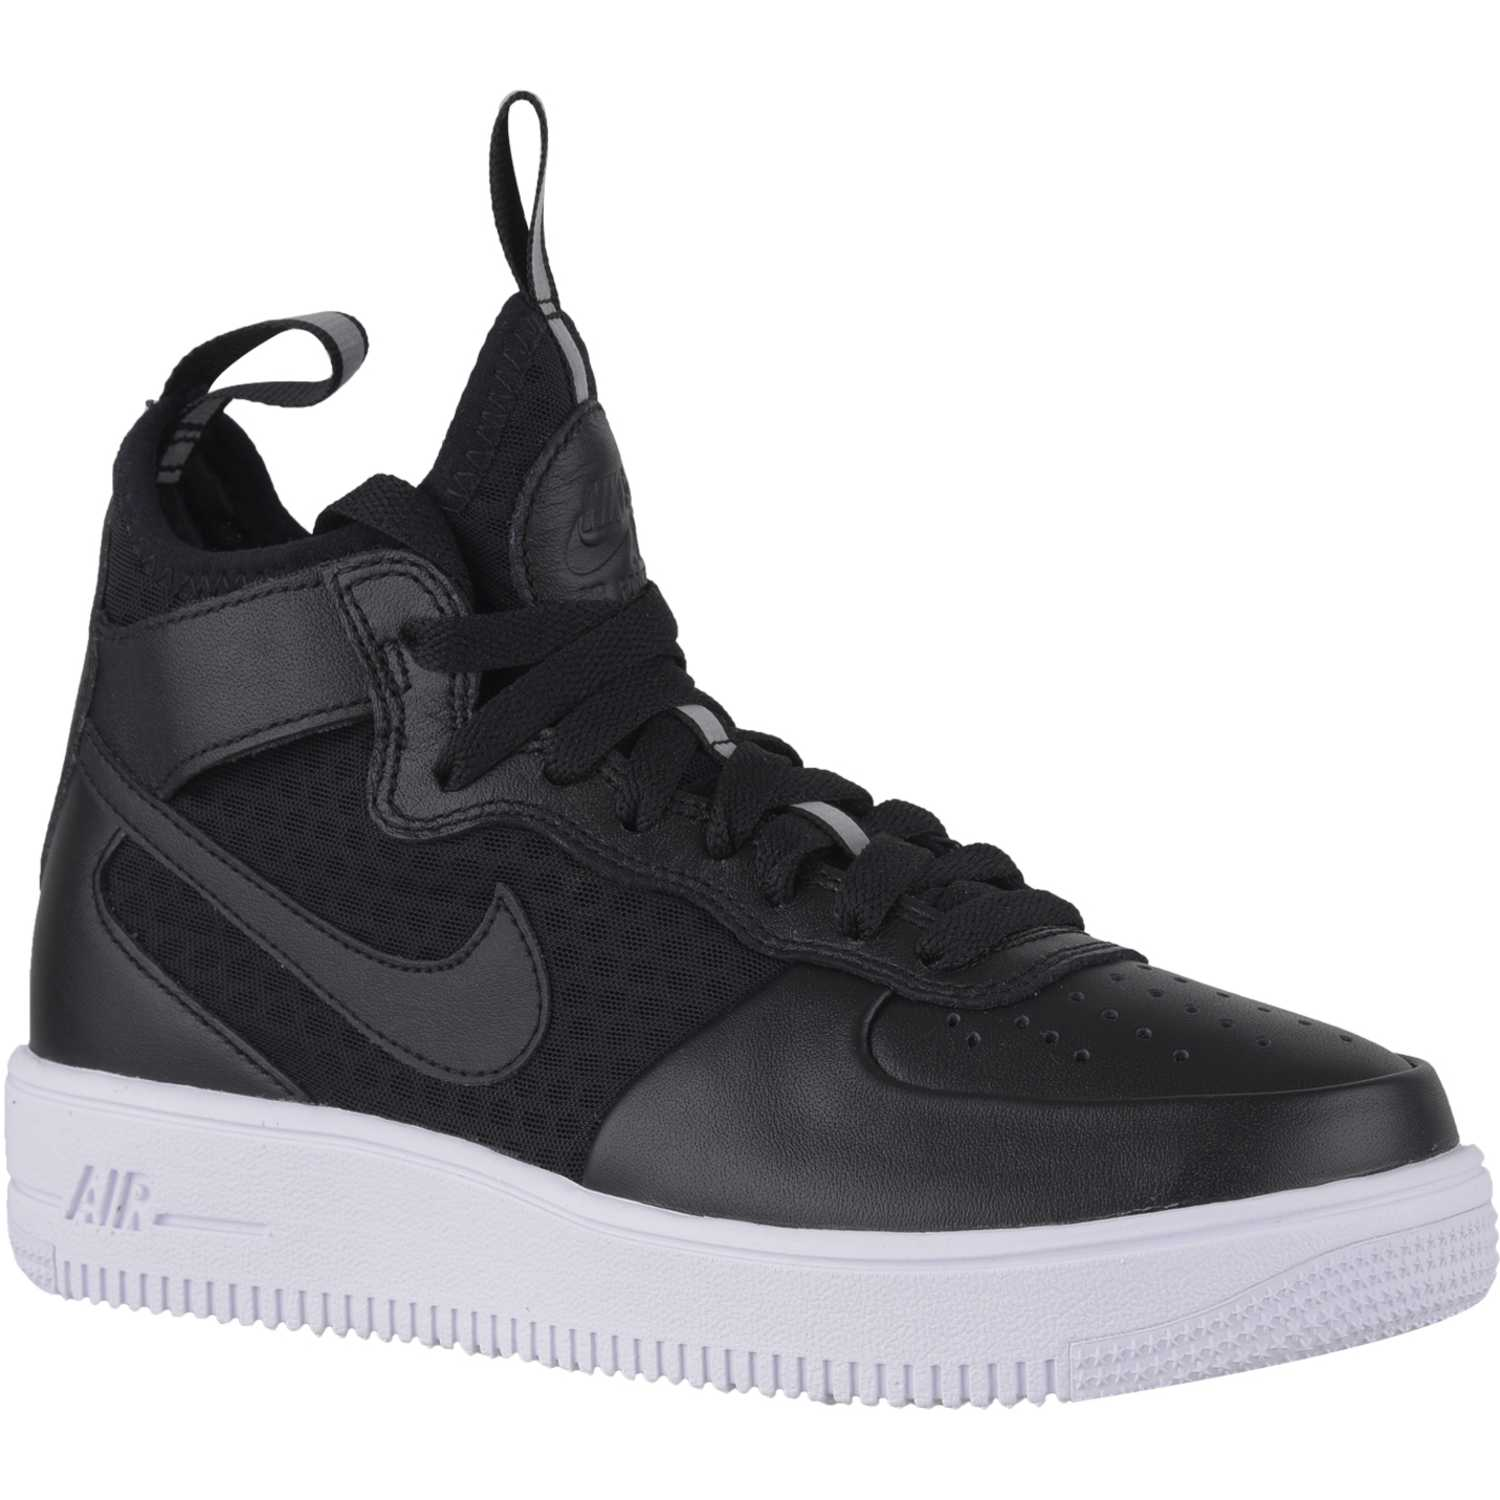 the latest e1e11 b0590 Zapatilla de Mujer Nike Negro  blanco wmns air force 1 ultraforce mid